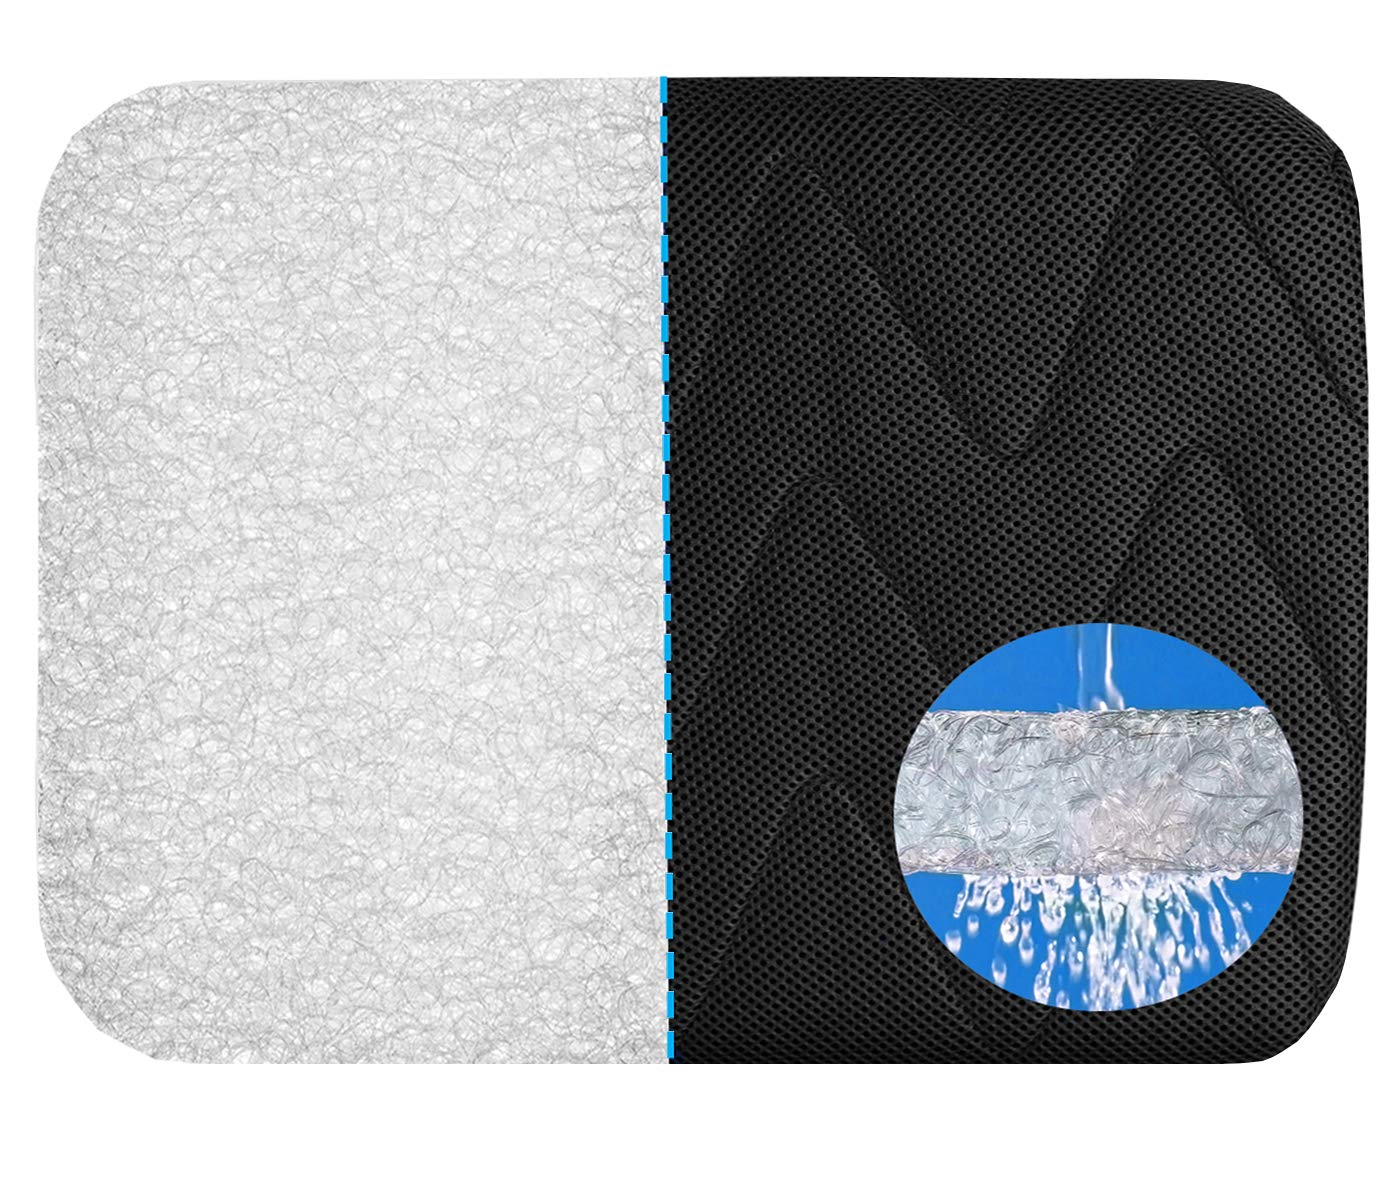 FAMI HELPER Seat Cushion for Office Chair - Use to Sciatica, Tailbone, Back Pain Relief with Washable Cooling 4D Net Structure Liner Wheelchair Seat Cushions(16.9 x 13.0 x 2.0 inches)